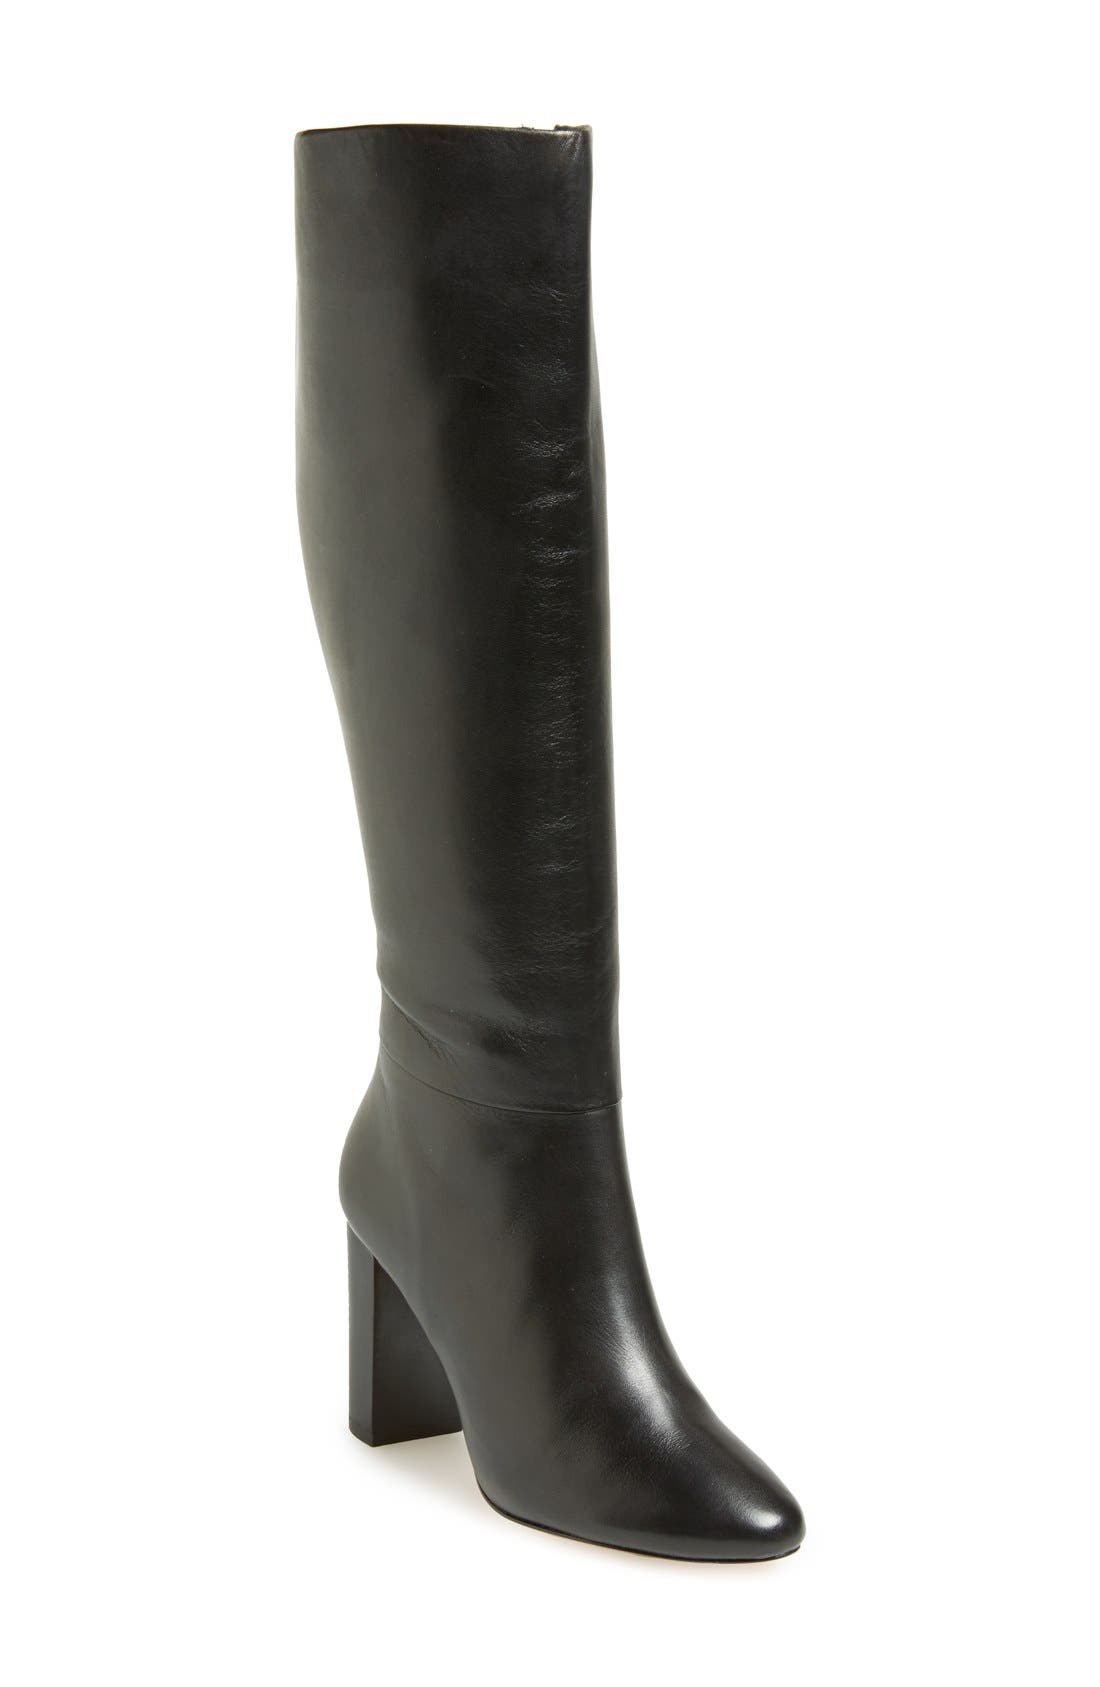 Alternate Image 1 Selected - Ted Baker London 'Lothari' Knee High Leather Boot (Women)